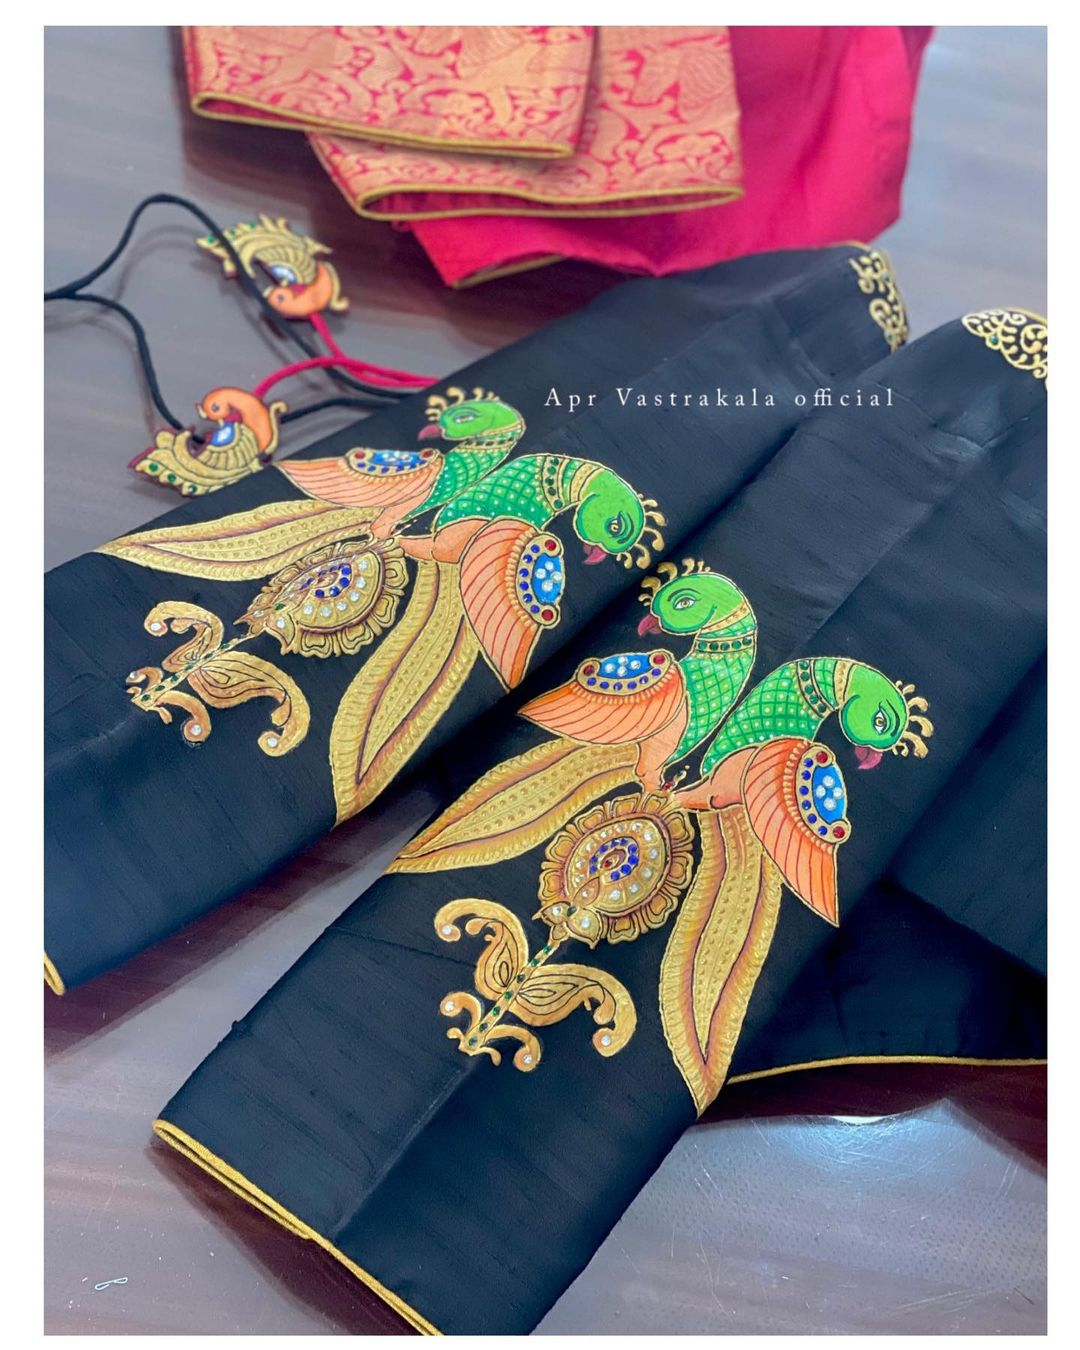 Gorgeous bridal blouse sleeves with parrots tanjore painting hand embroidery blouse. 2021-10-09